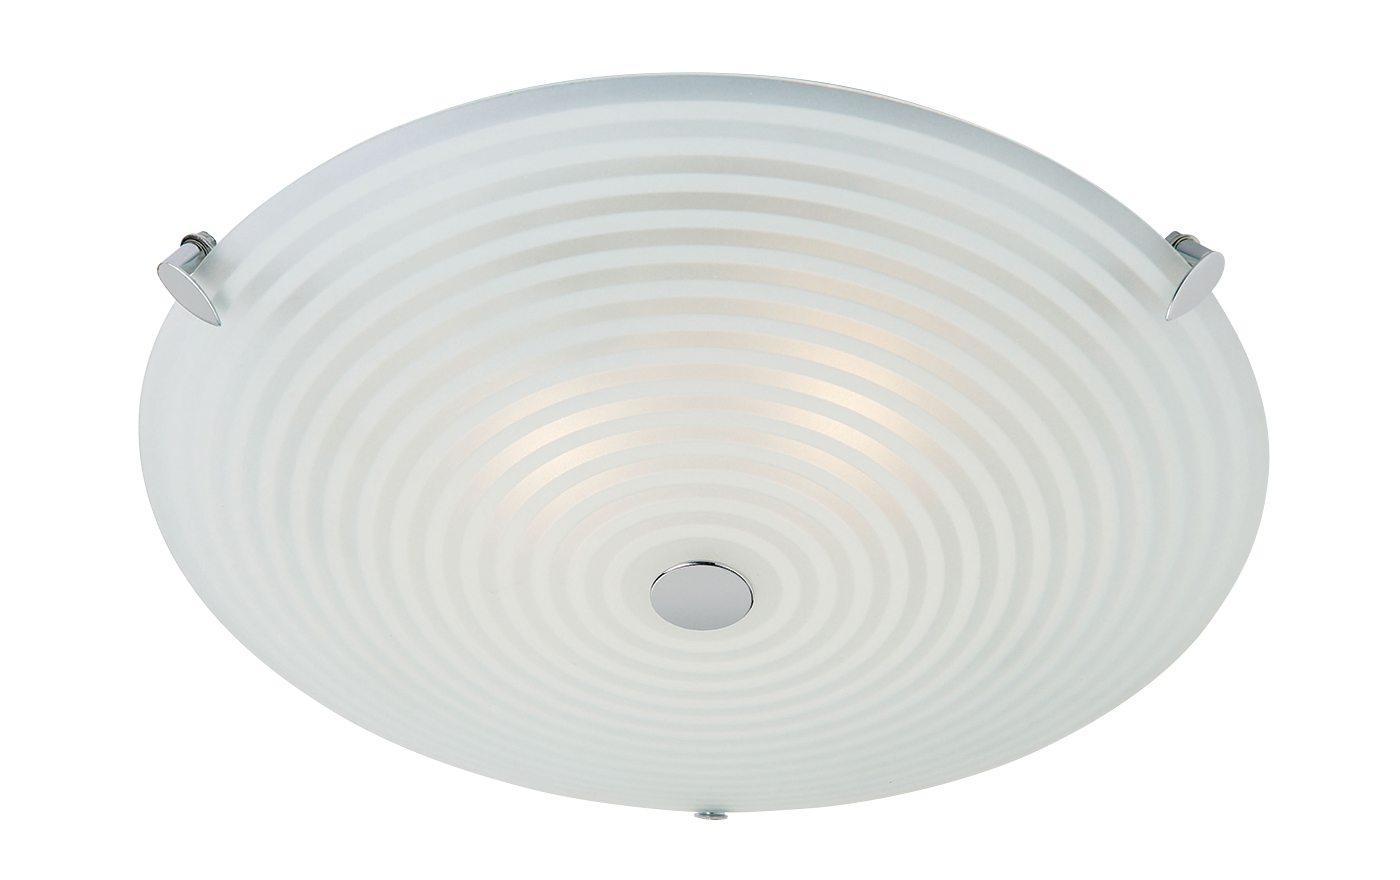 Endon Roundel flush ceiling light 2x 40W Frosted white & clear glass chrome Thumbnail 1